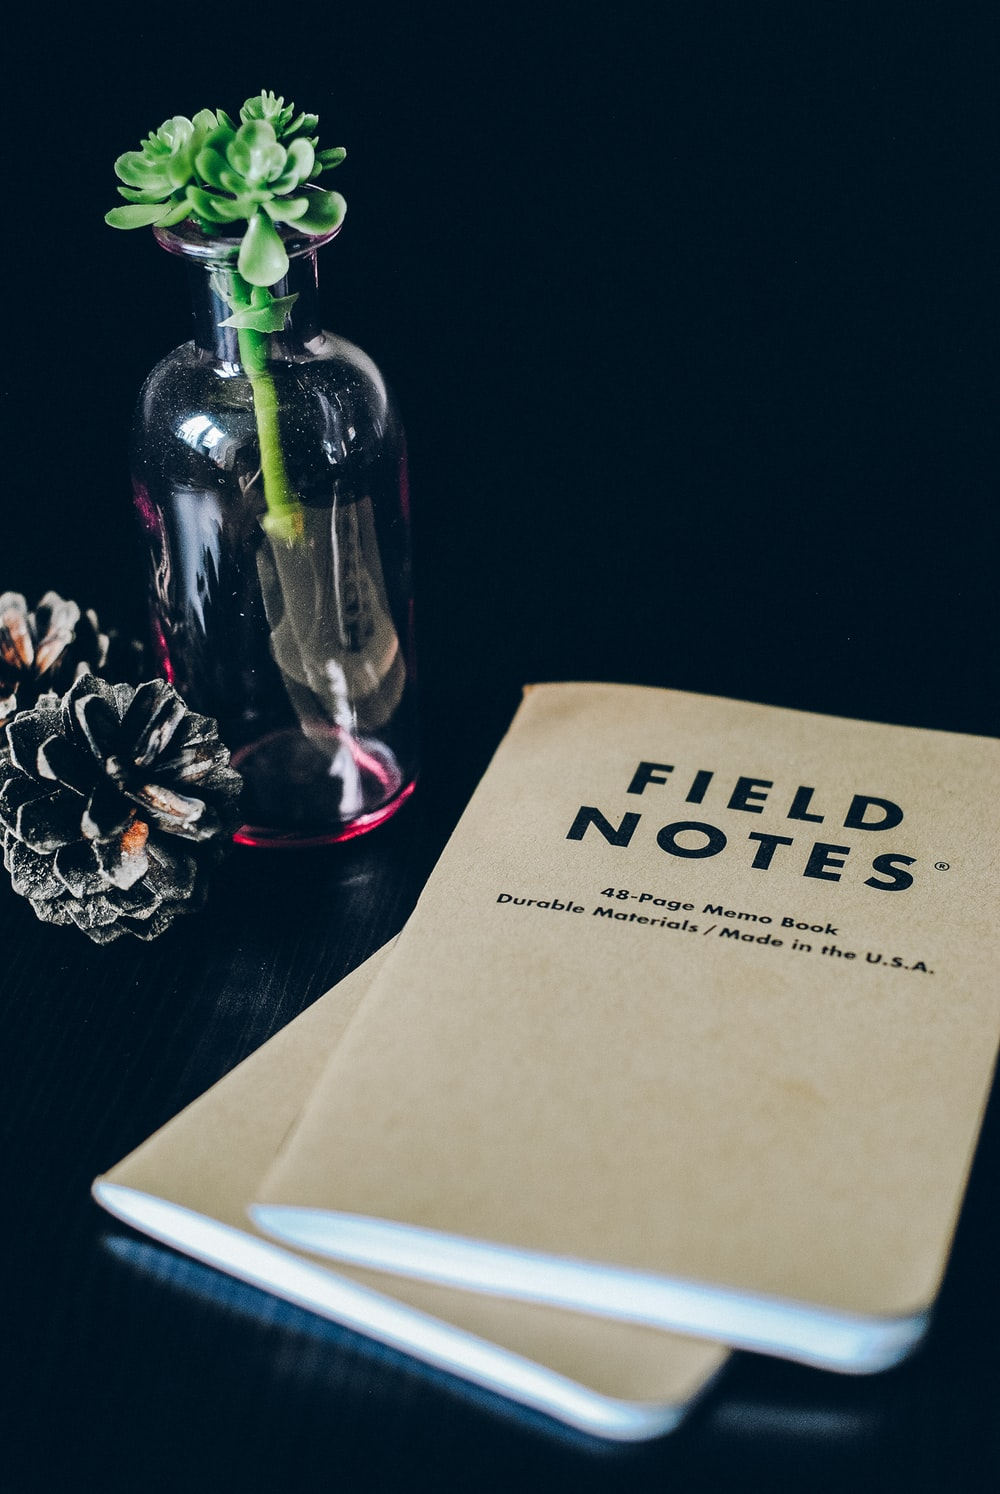 Field Notes books